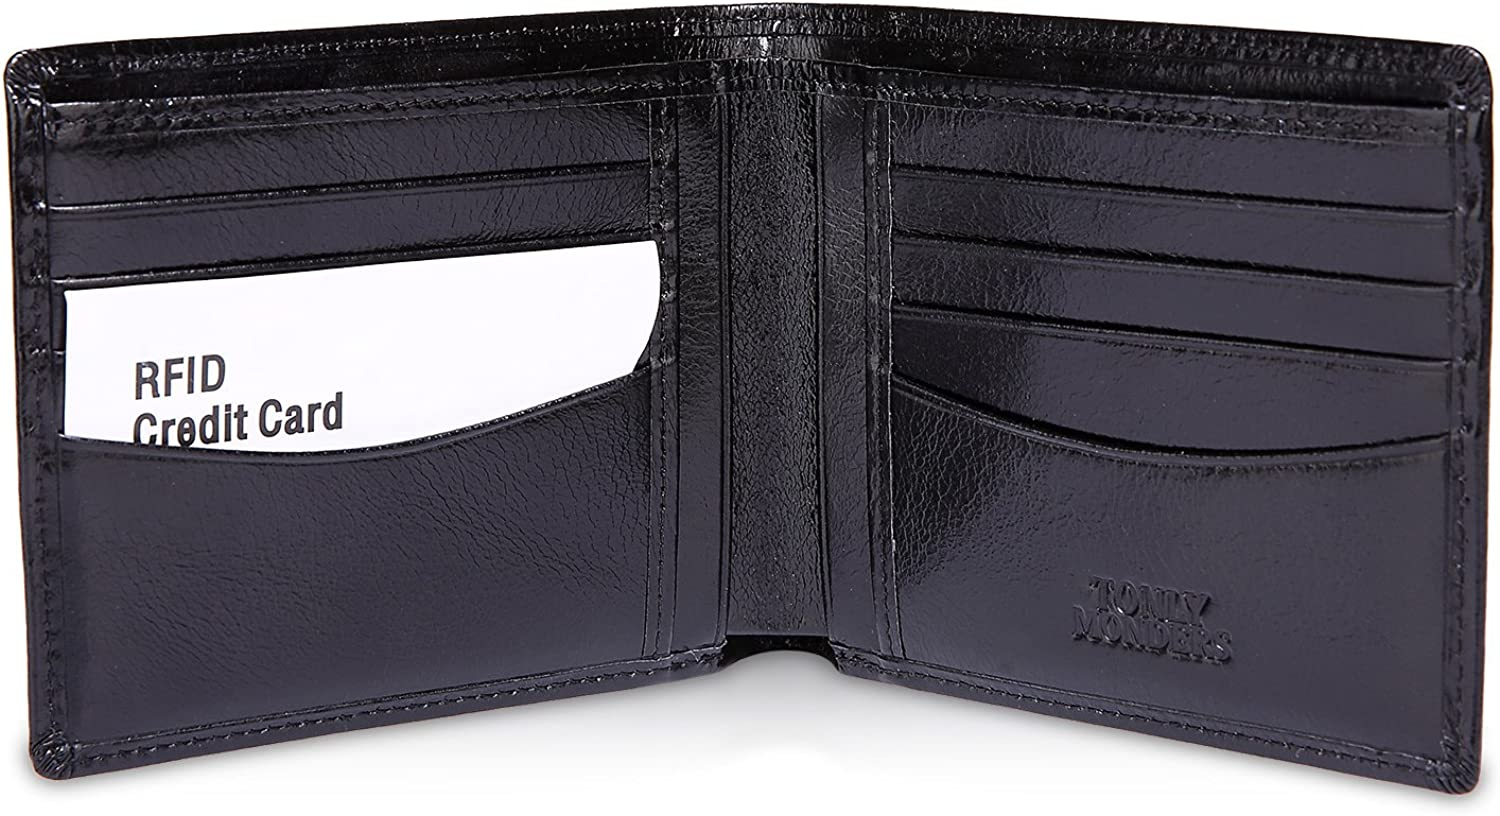 Tonly Monders Top Grain Leather RFID Blocking Wallet Bifold Front Pocket Wallet Black